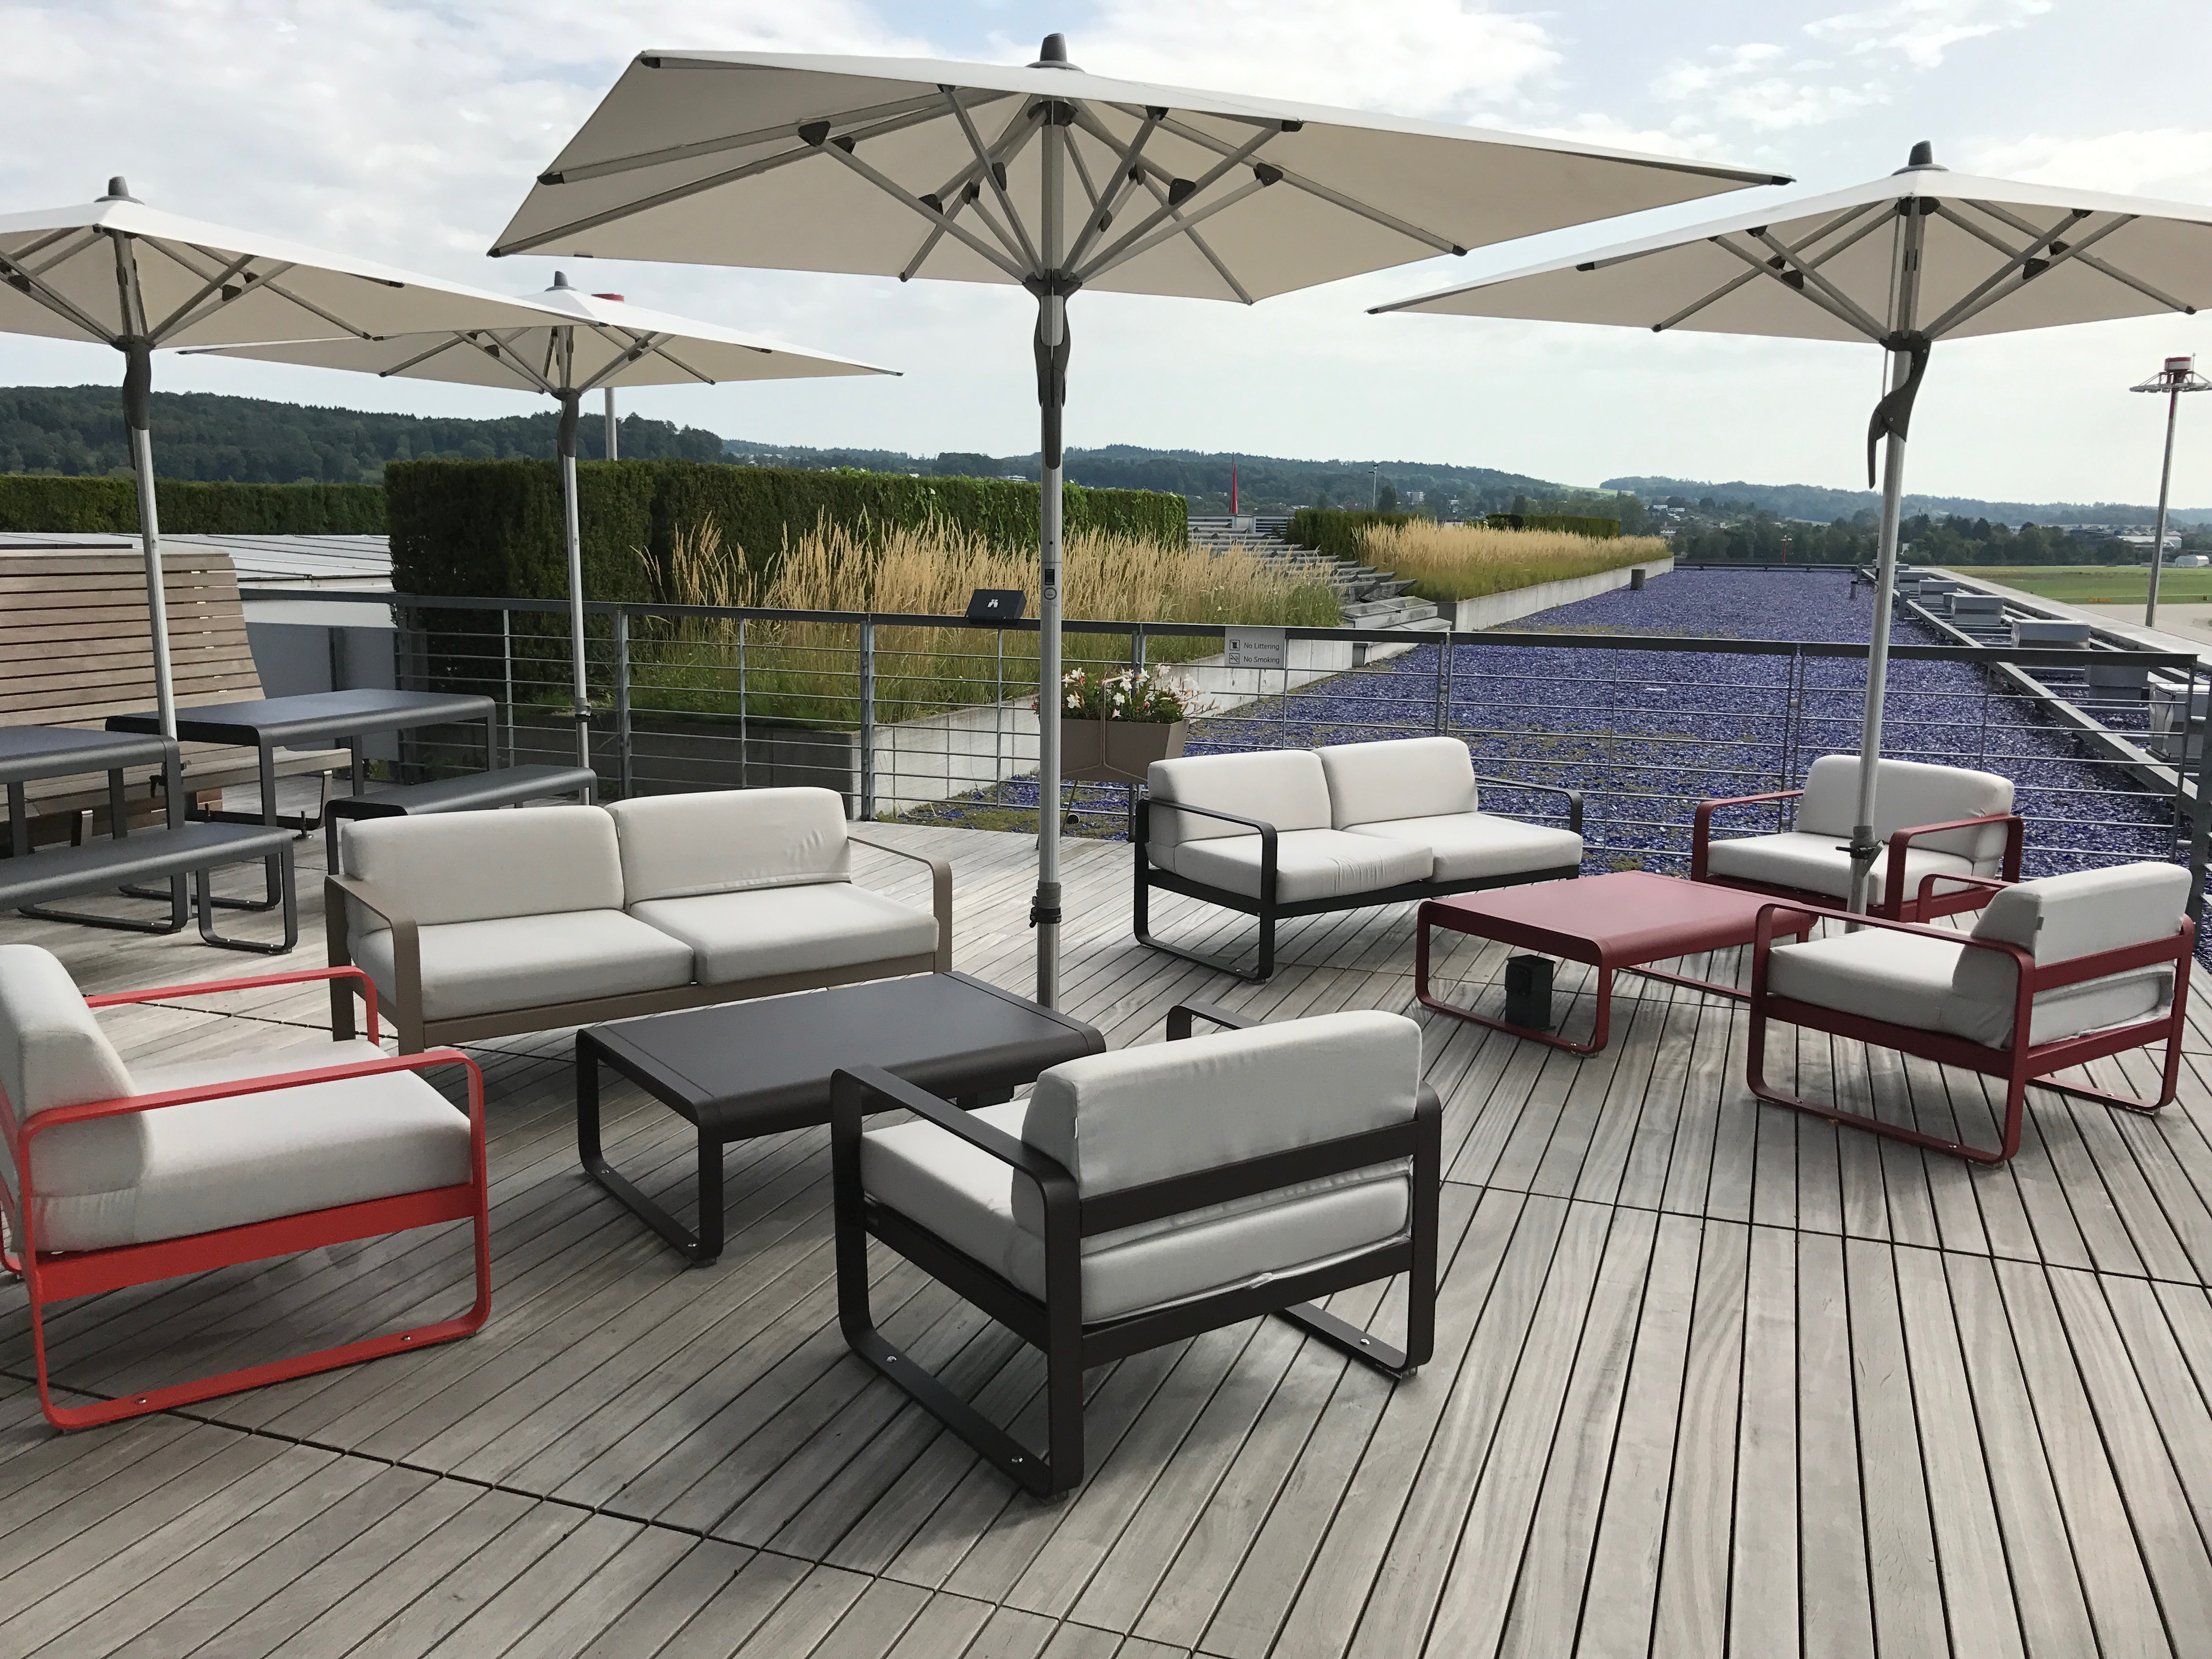 Swiss First Class Lounge at Zurich outside terrace area